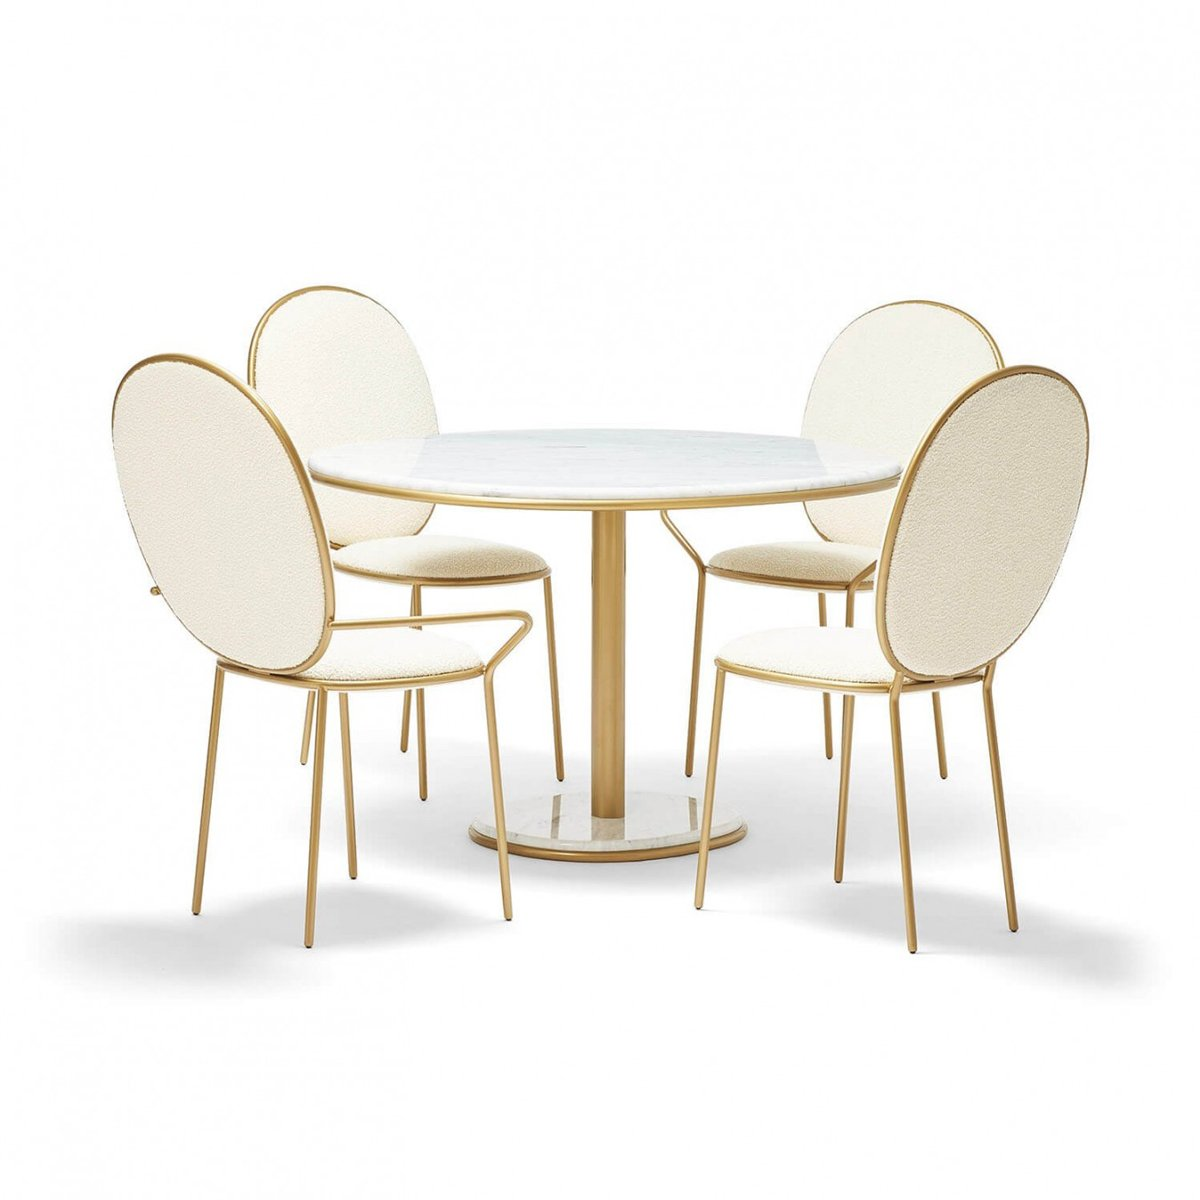 Replica Stay dining chairs and armchairs with table